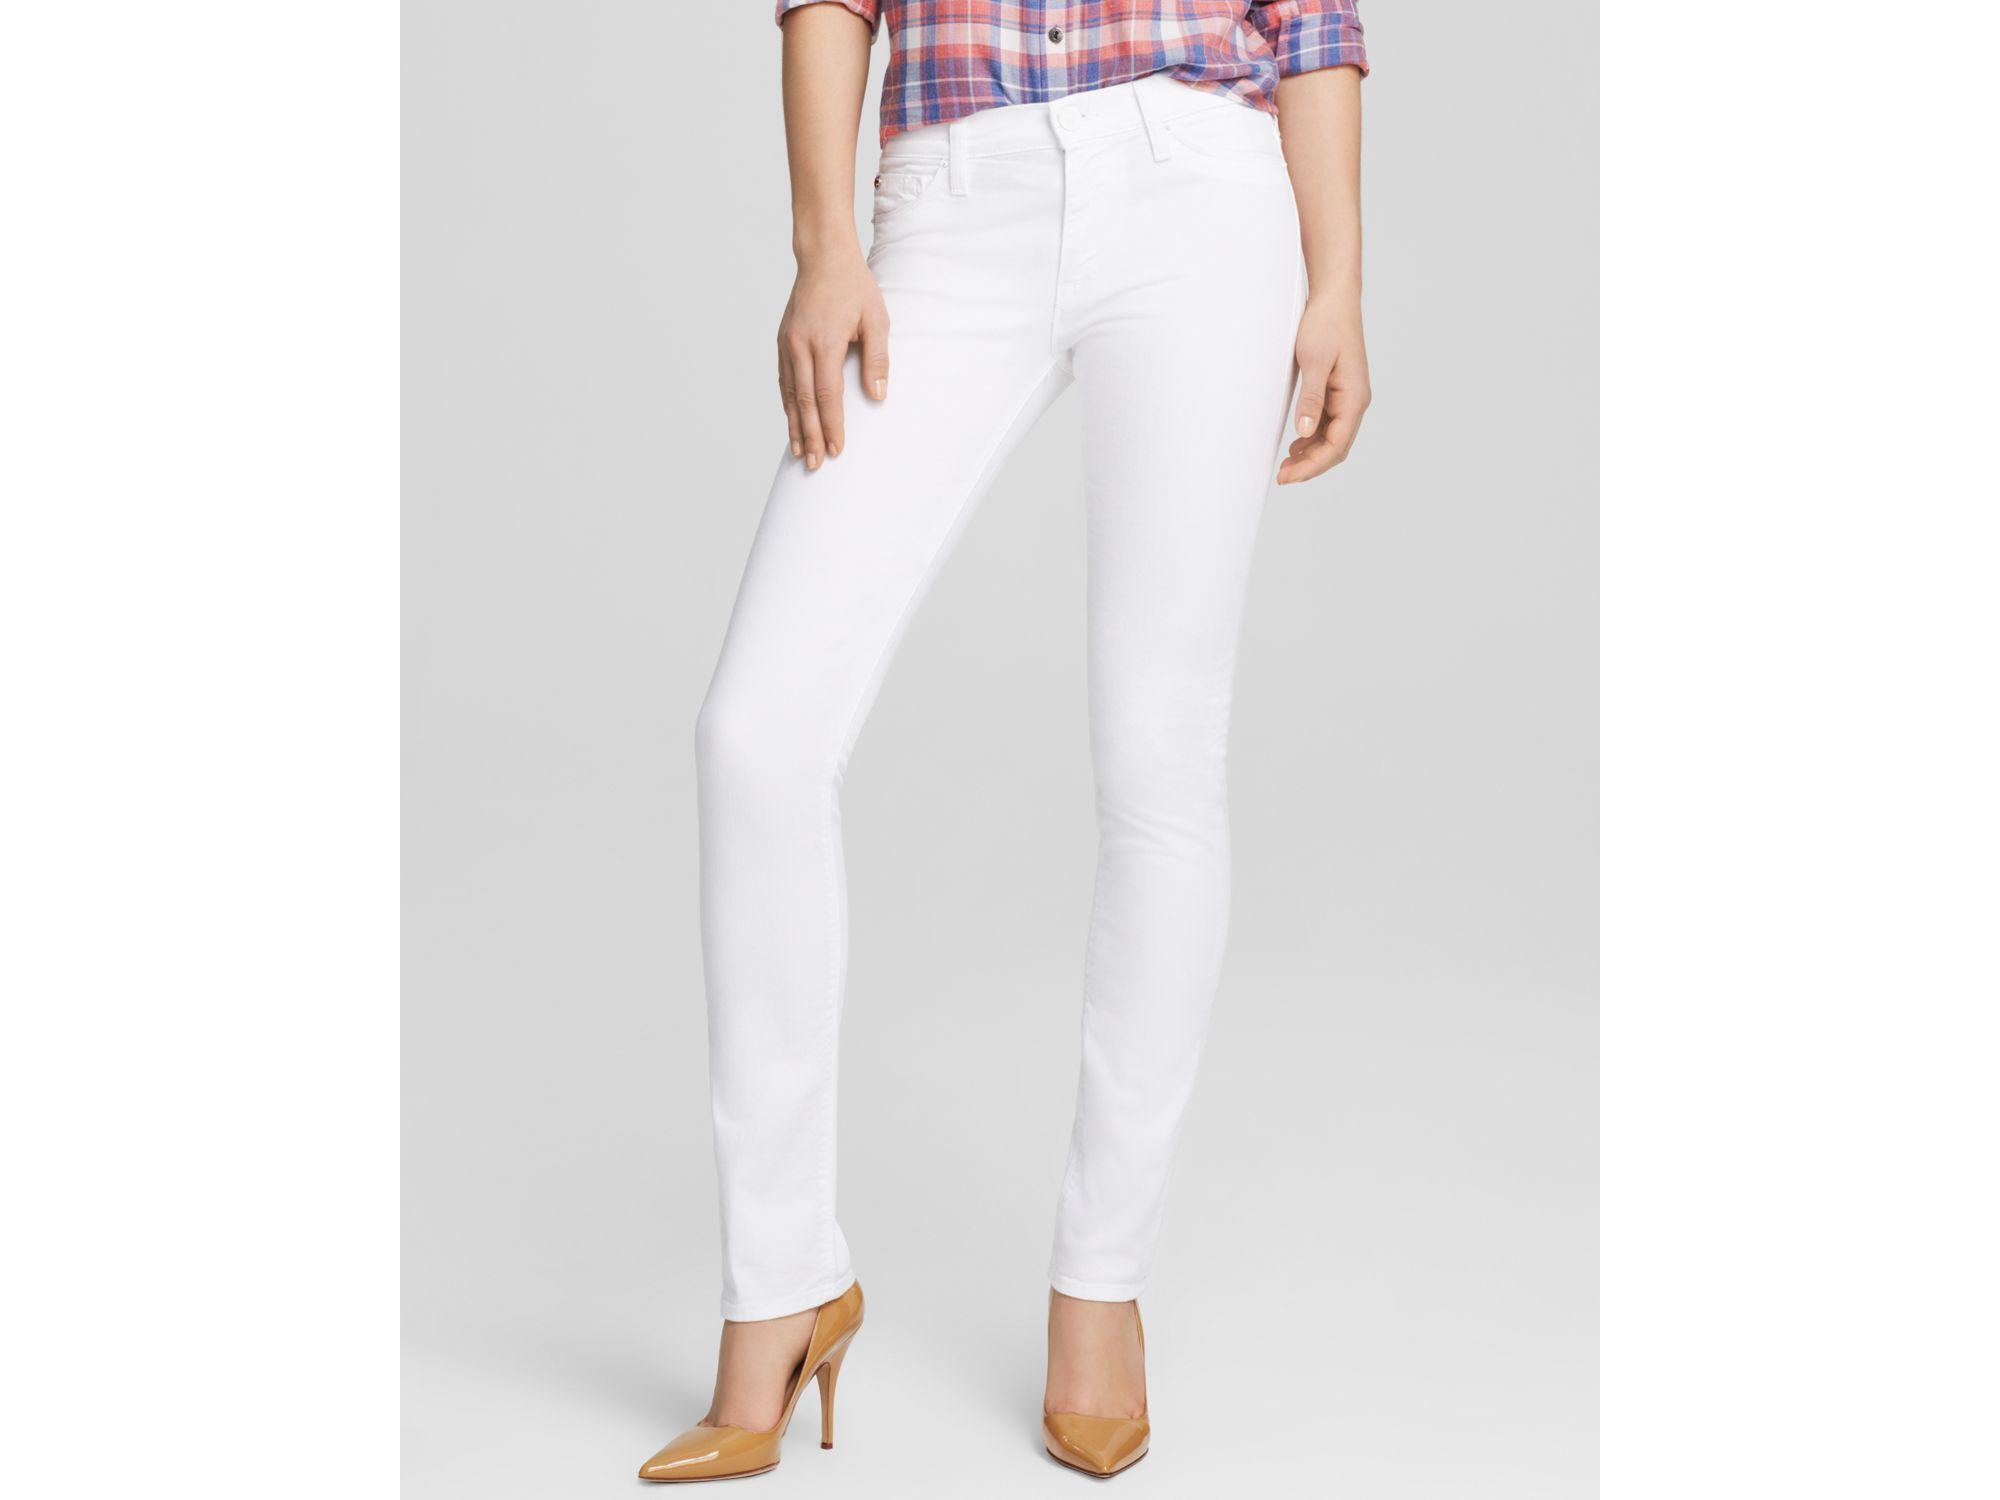 Hudson jeans Shine Mid Rise Skinny Jeans In White in White | Lyst